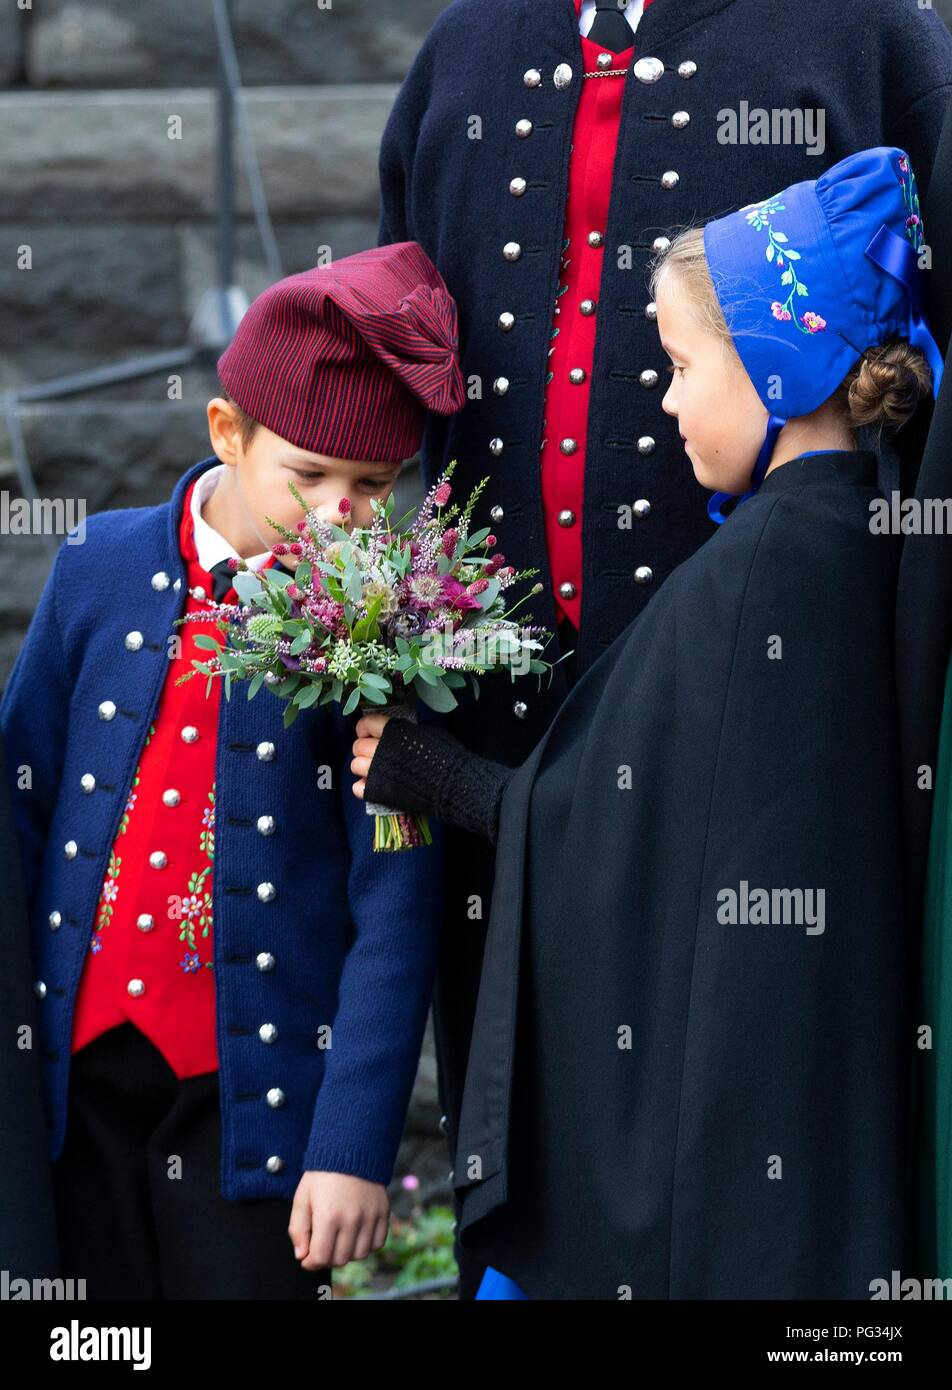 Torshavn, Faroe Islands, Denmark. 23rd Aug, 2018. Prince Vincent and Princess Josehpine of Denmark arrive with the The Royal Ship, HDMY Dannebrog at Bursatangi, on August 23, 2018, on the 1st of the 4 days visit to the Faroe Islands Photo : Albert Nieboer/ Netherlands OUT/Point de Vue OUT | Credit: dpa/Alamy Live News - Stock Image